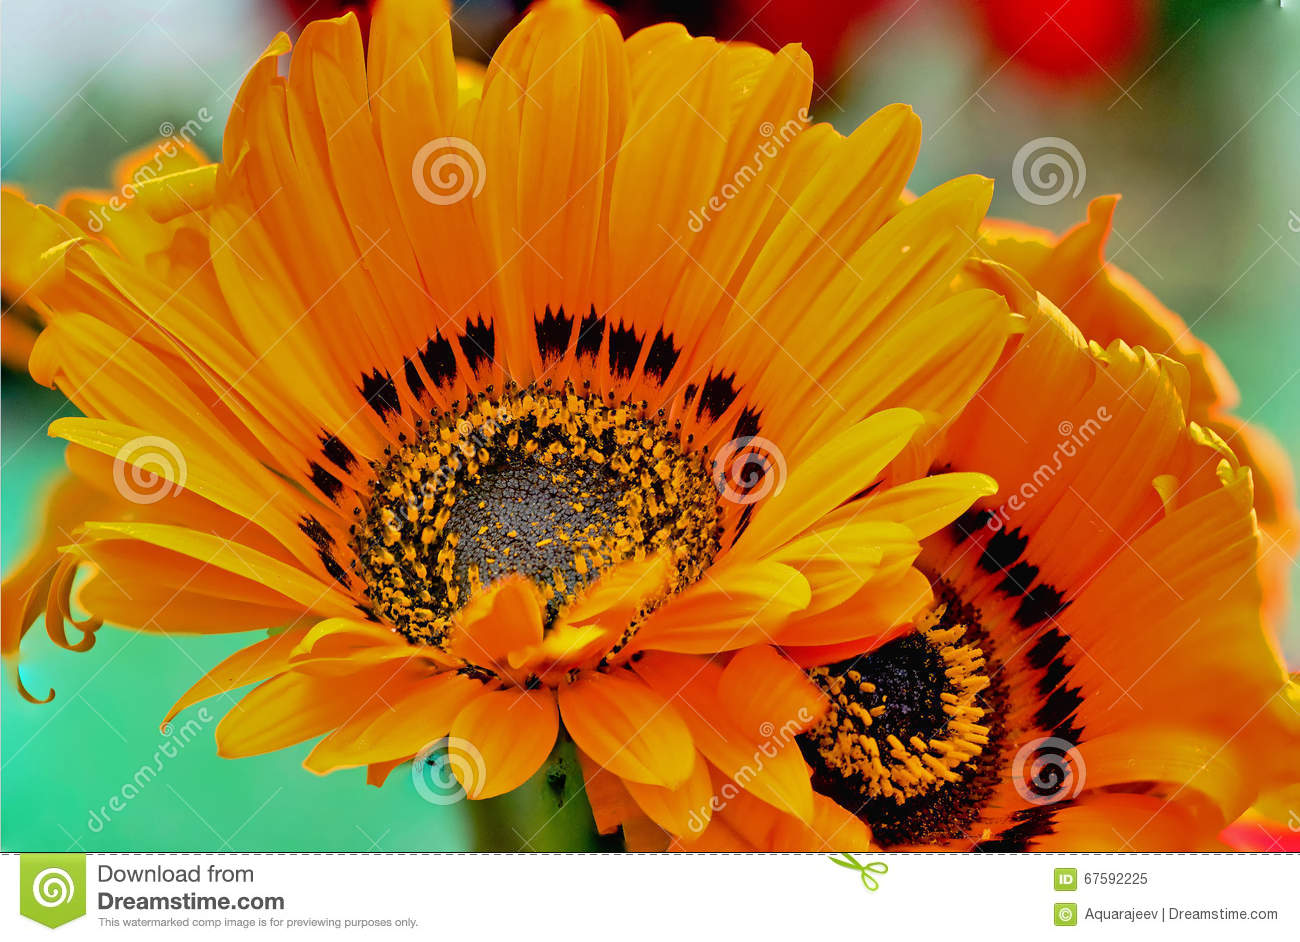 Flower With Yellow Petals And A Distinctive Black Center Stock Image